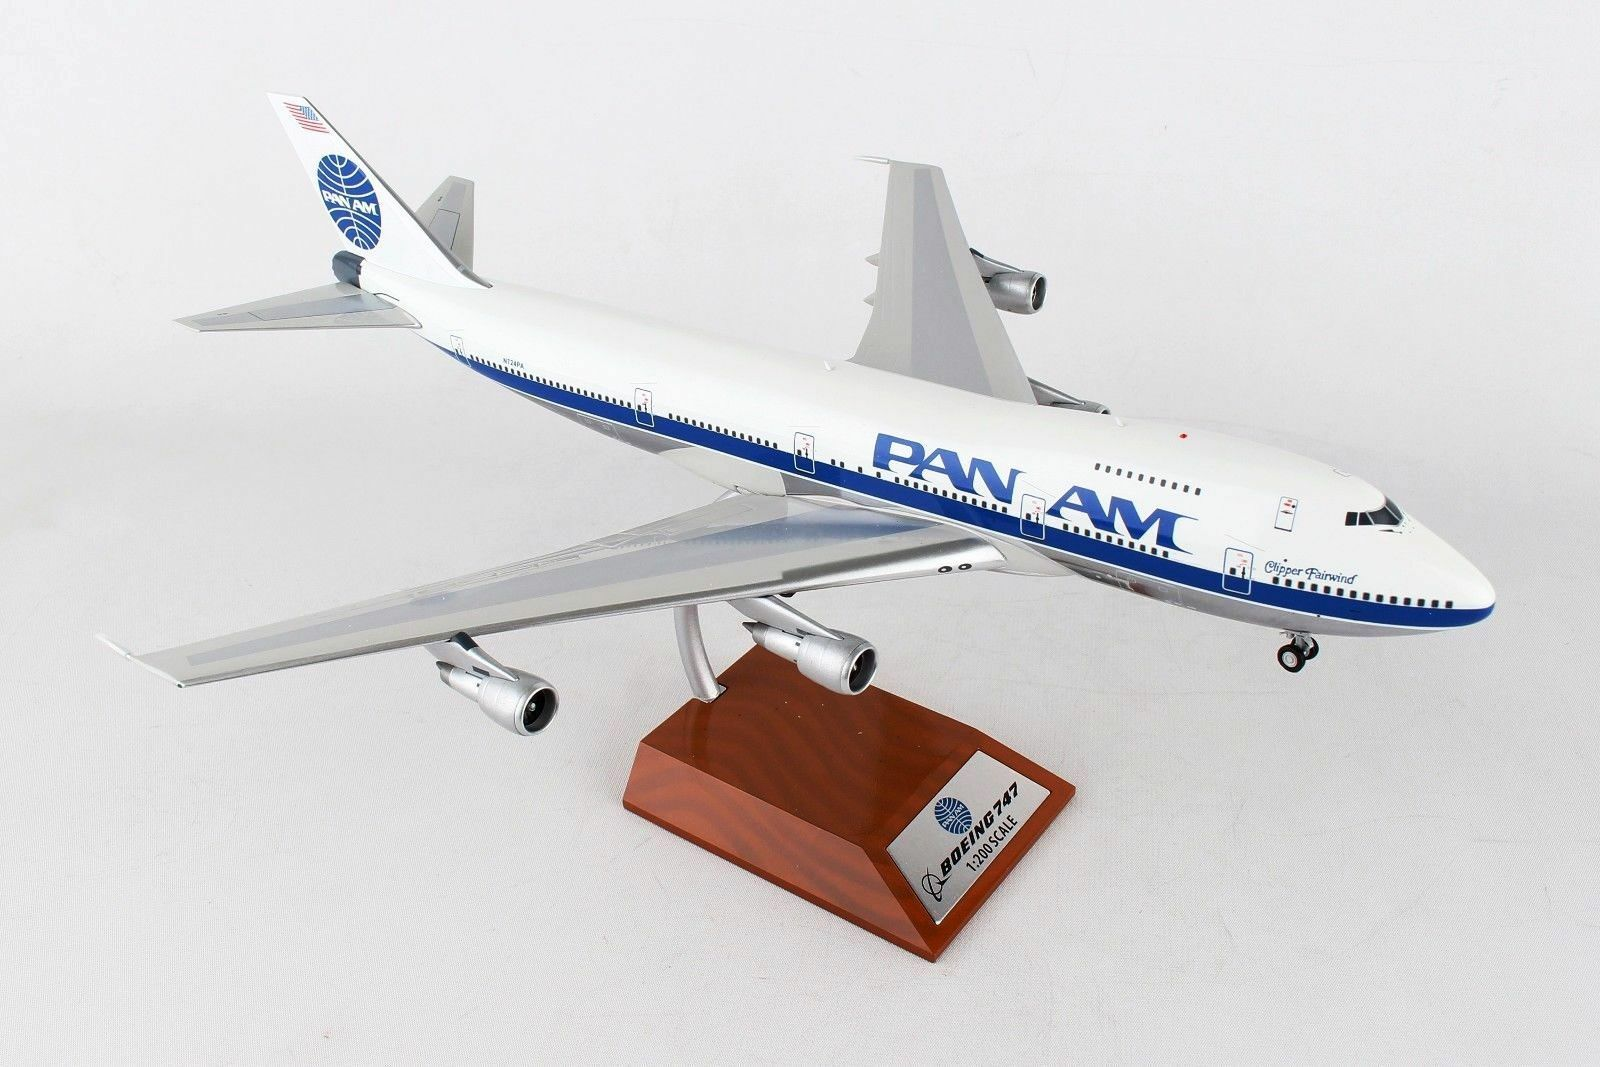 INFLIGHT200 IF7420317 1 200 PAN AM BOEING 747-200 N724PA CLIPPER FAIRWIND WSTAND